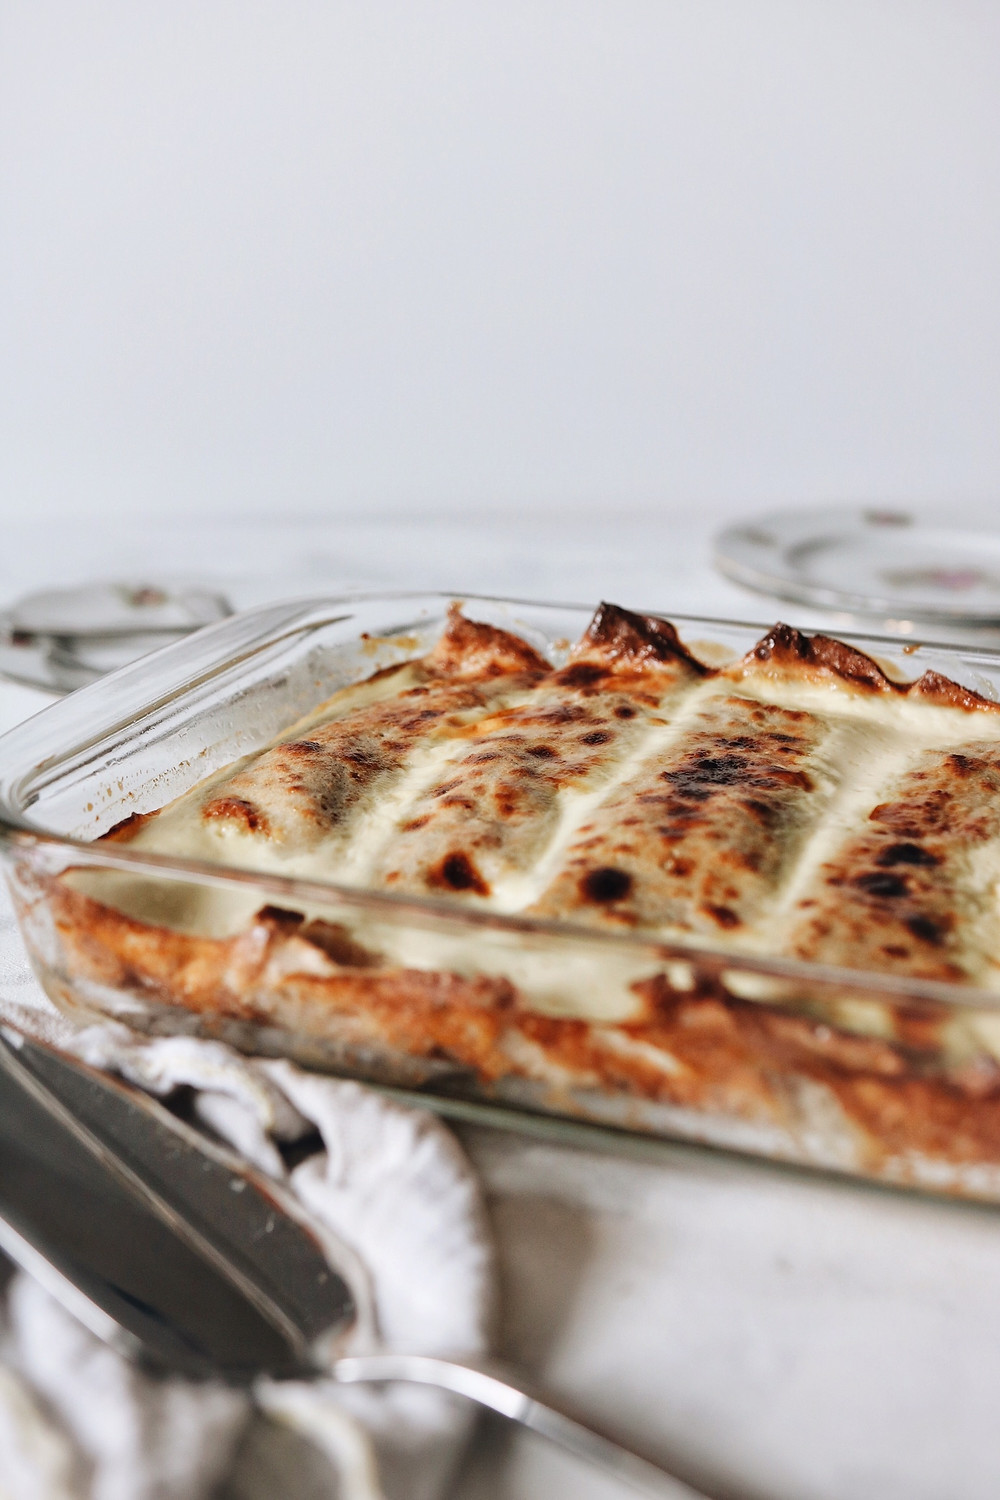 A baking pan filled with gluten free baked savory crepes filled with fresh cheese, cooked swiss chard and pancetta.